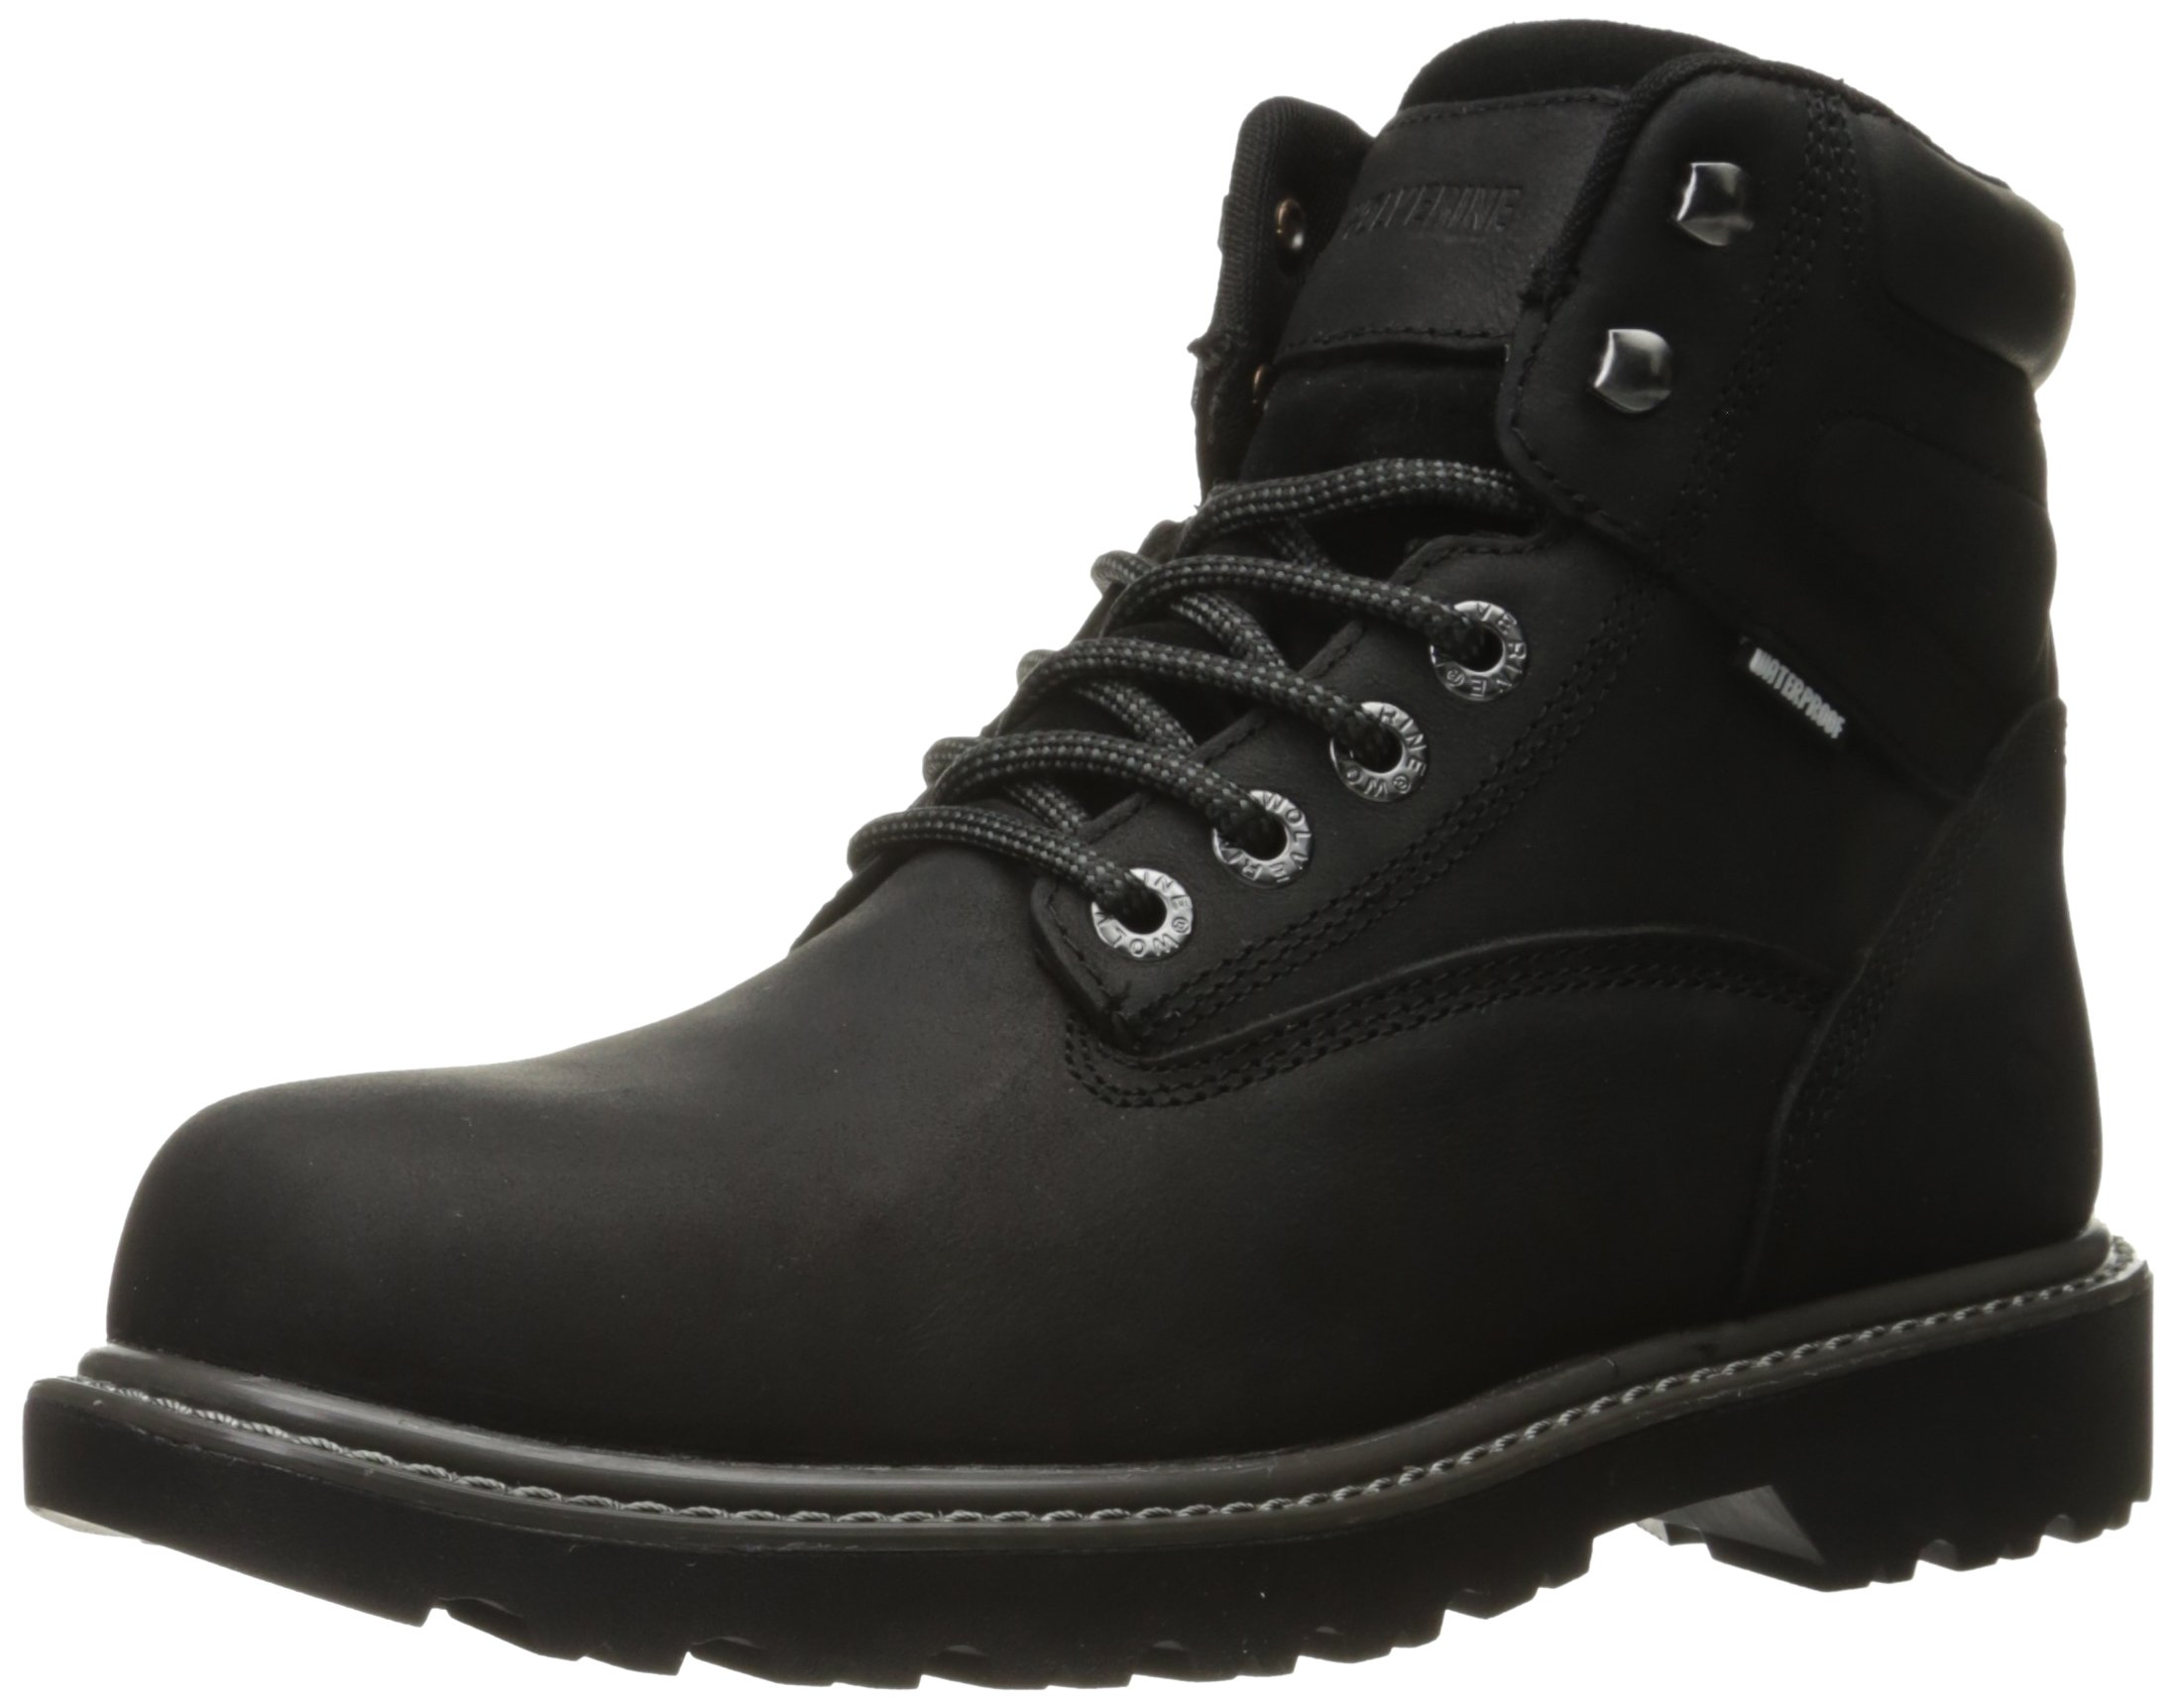 Wolverine Men's Floorhand Waterproof 6'' Steel Toe Work Boot, Black, 9.5 M US by Wolverine